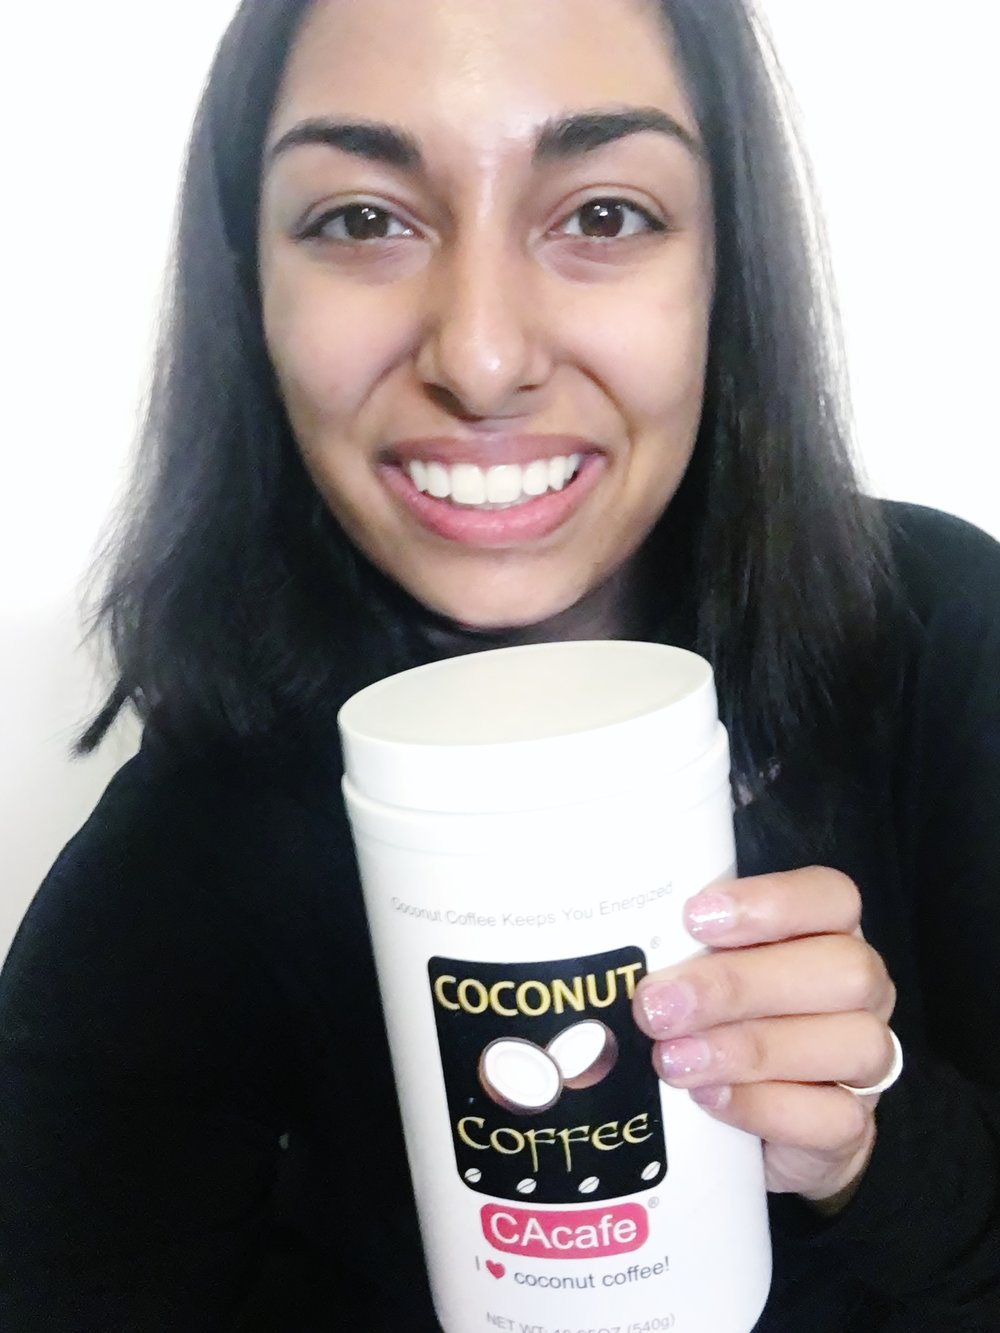 """Feel confident and excited.  This is the power of coconut coffee..."" Read Elora's full review here!"